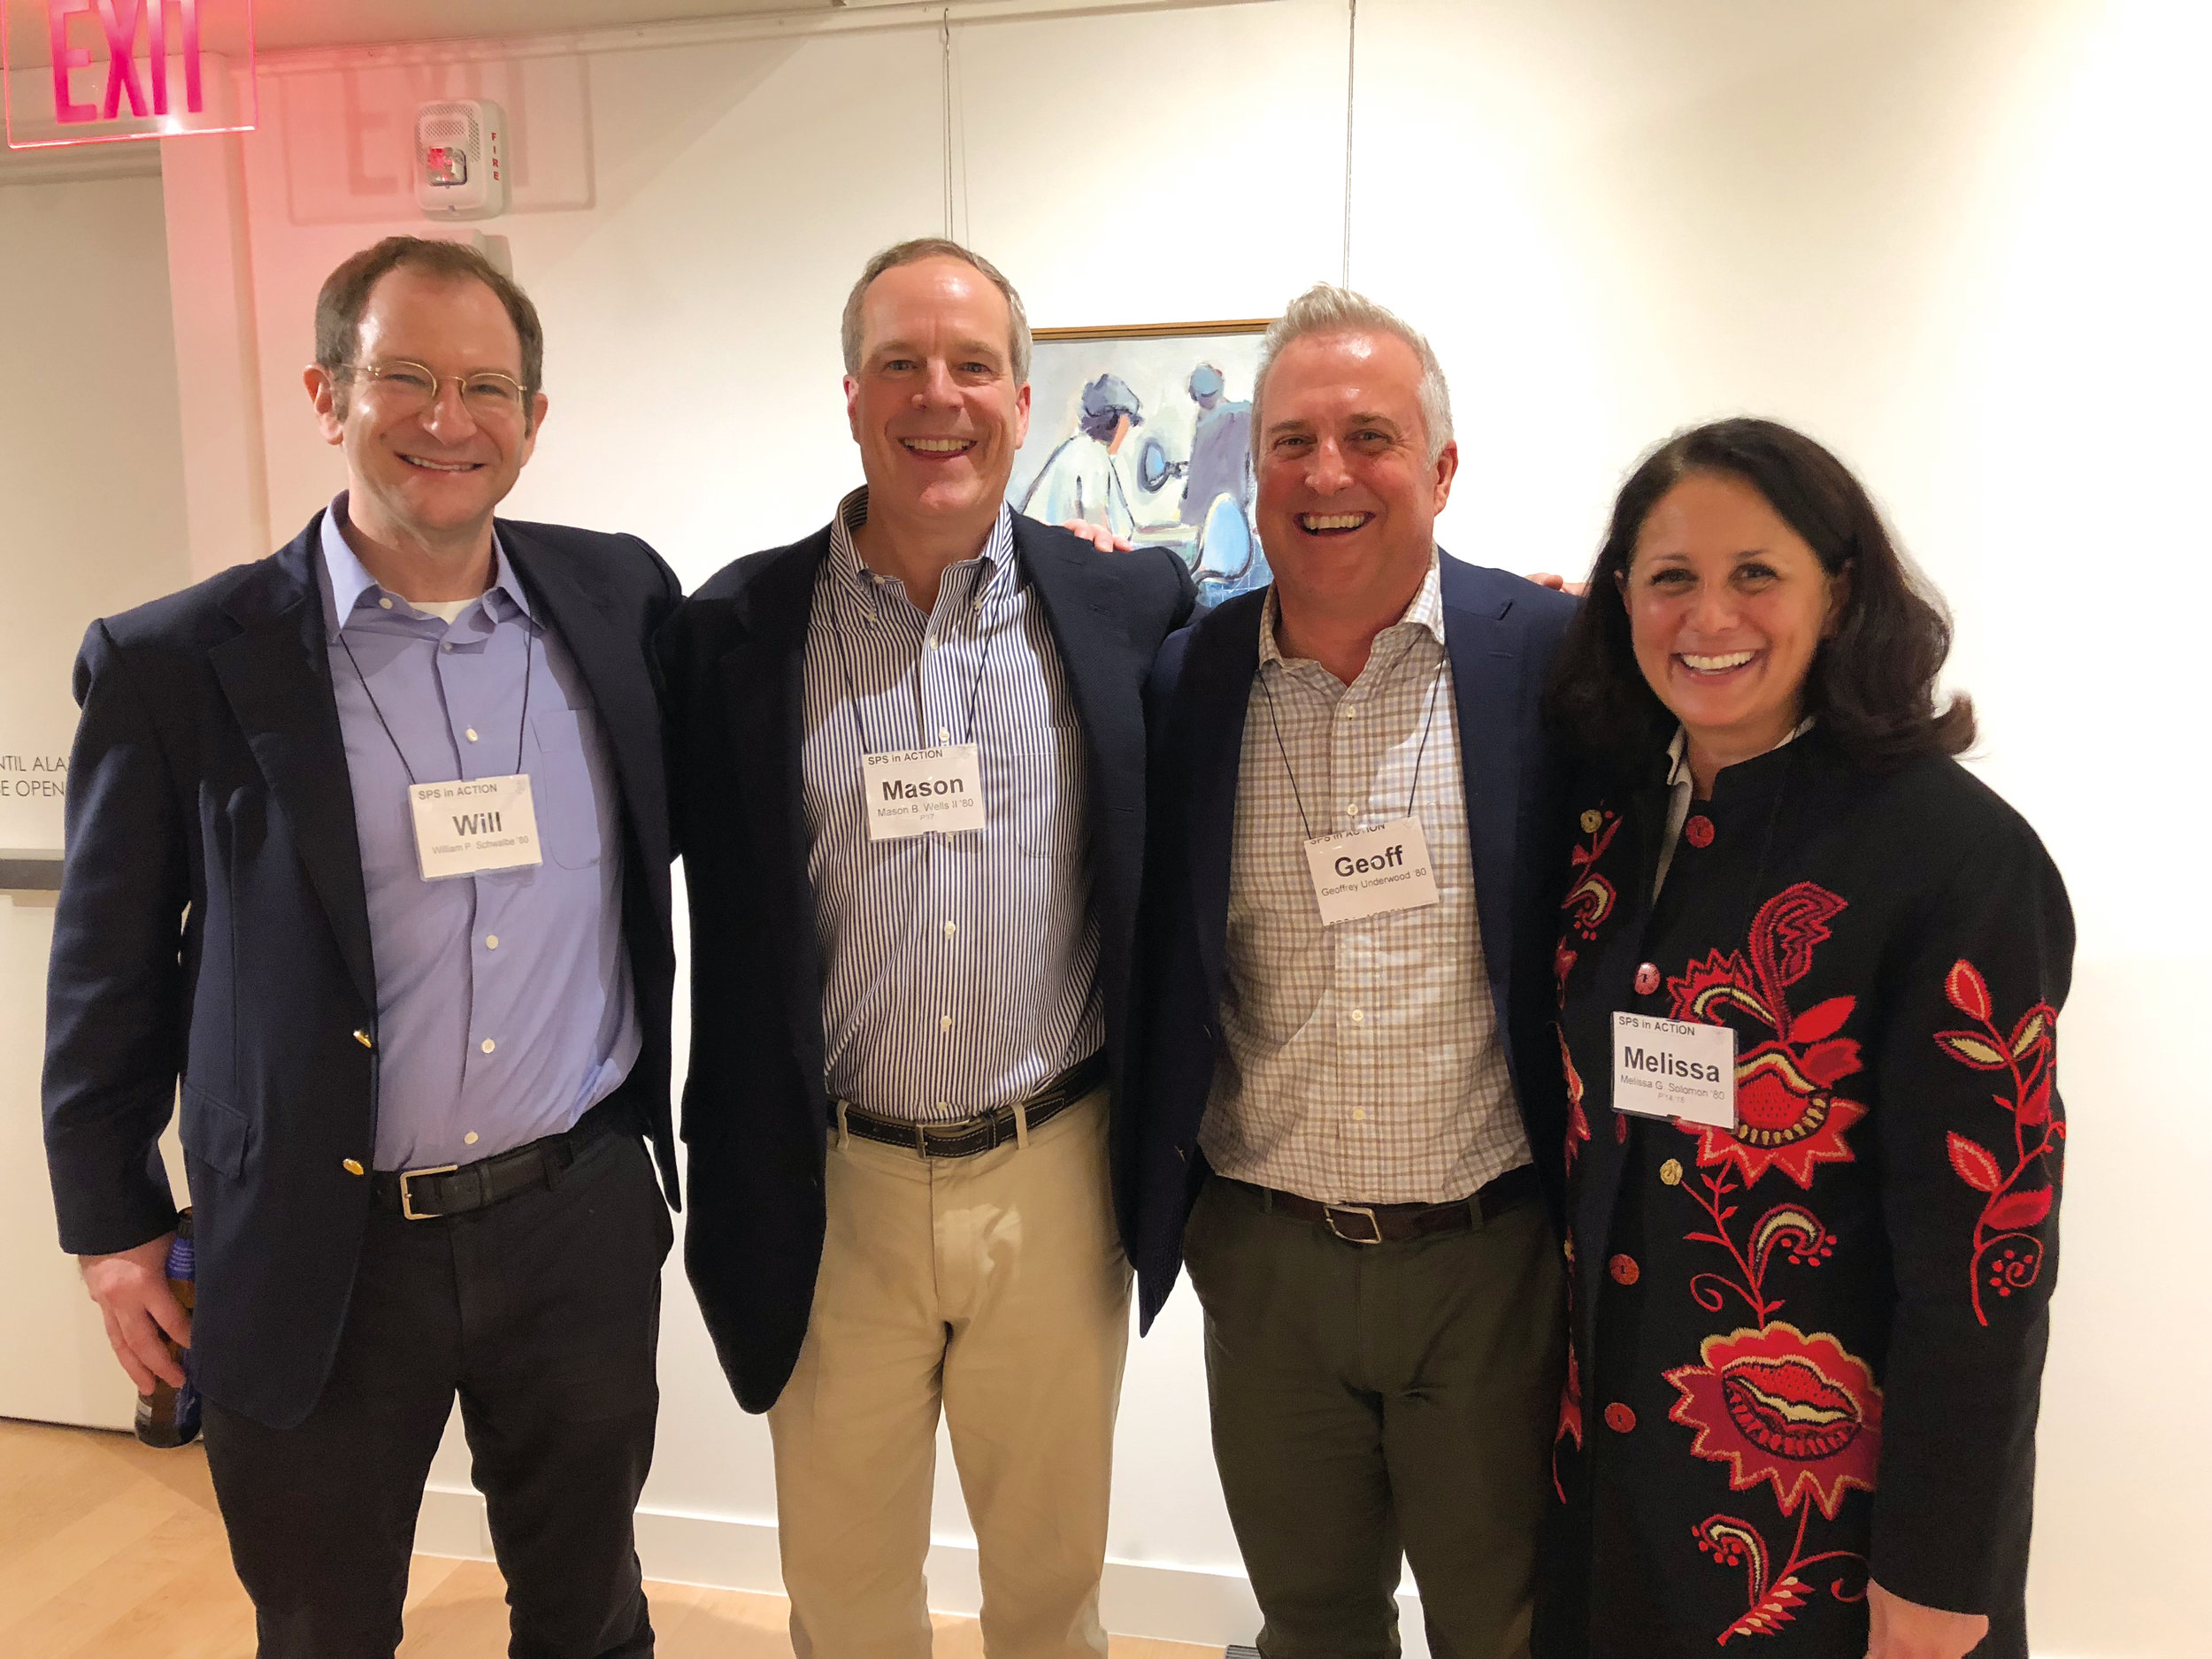 1980 formmates (l. to r.) Will Schwalbe, Mason Wells, Geoffrey Underwood, and Melissa Solomon at the dedication of the newly opened Crumpacker Gallery.